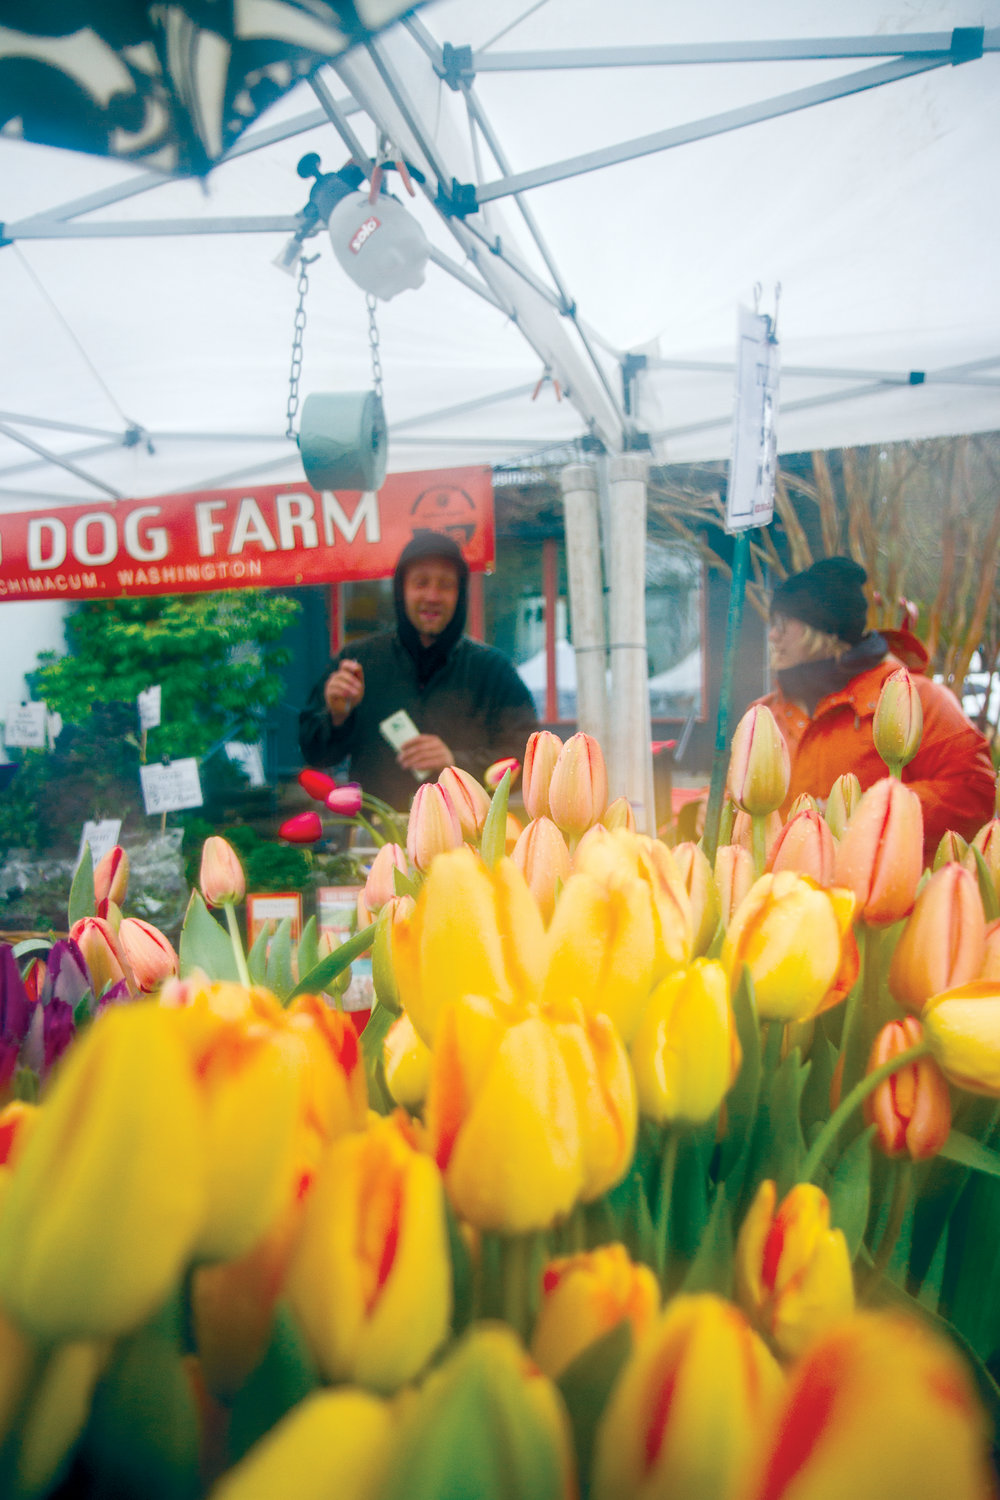 Red Dog Farm sold buckets of the tulips they grow at their farm in Chimacum, making the grey day just a bit more colorful.